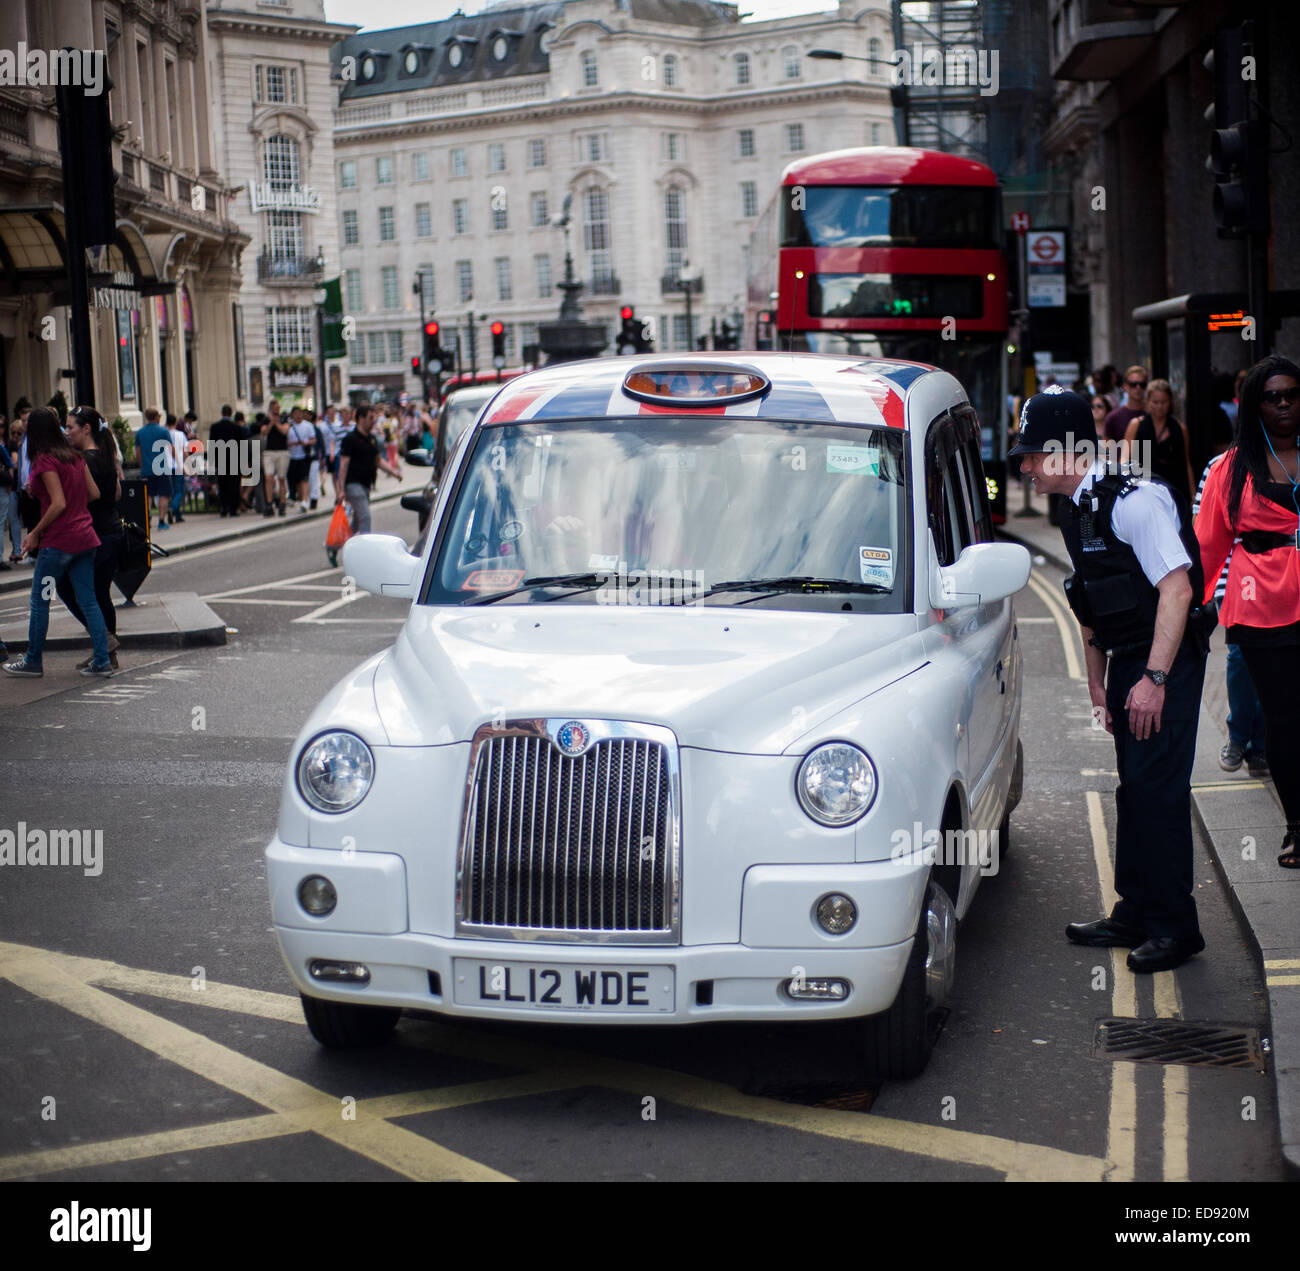 Policeman talking to London Taxi driver on Shaftesbury Avenue near Picadilly Circus, London - Stock Image